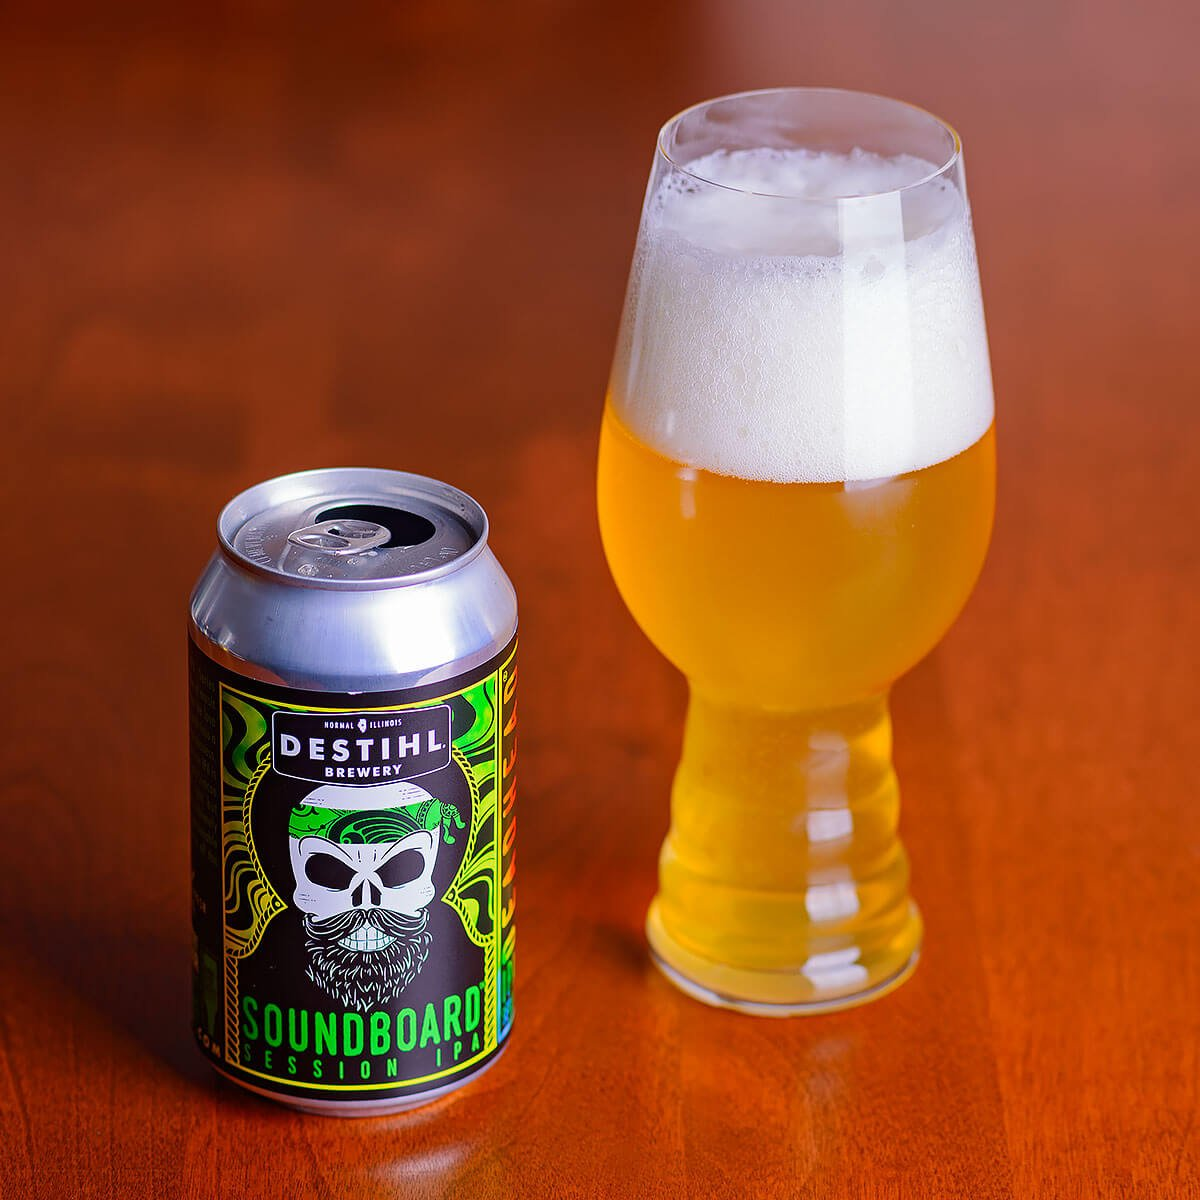 Soundboard Session IPA by DESTIHL Brewery